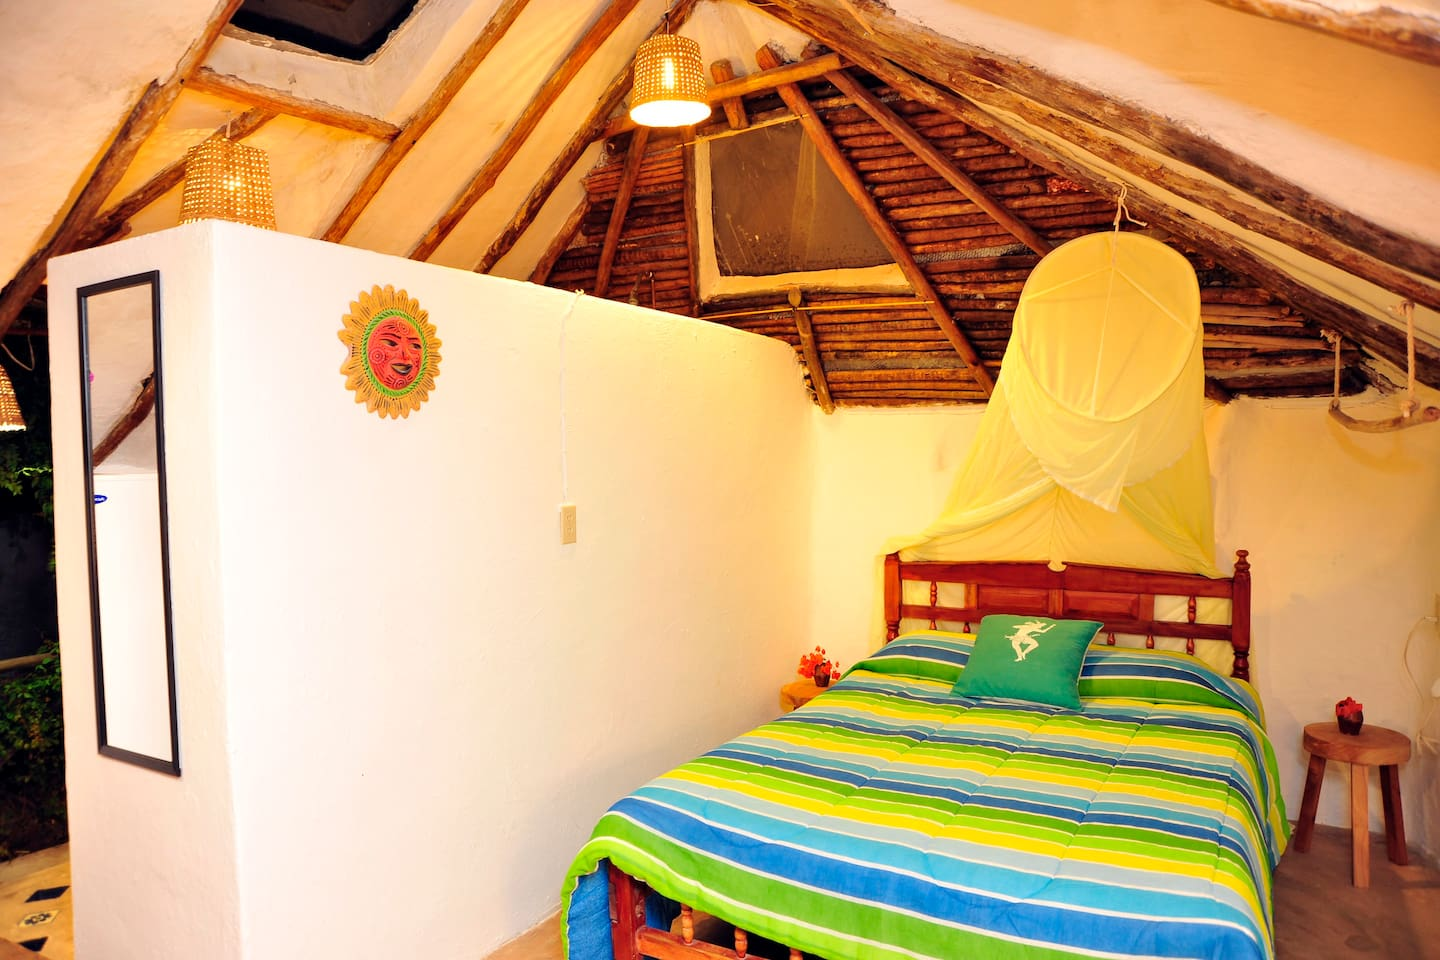 Casitas Kinsol - ww(URL HIDDEN) - Room #7 - With a full-size bed